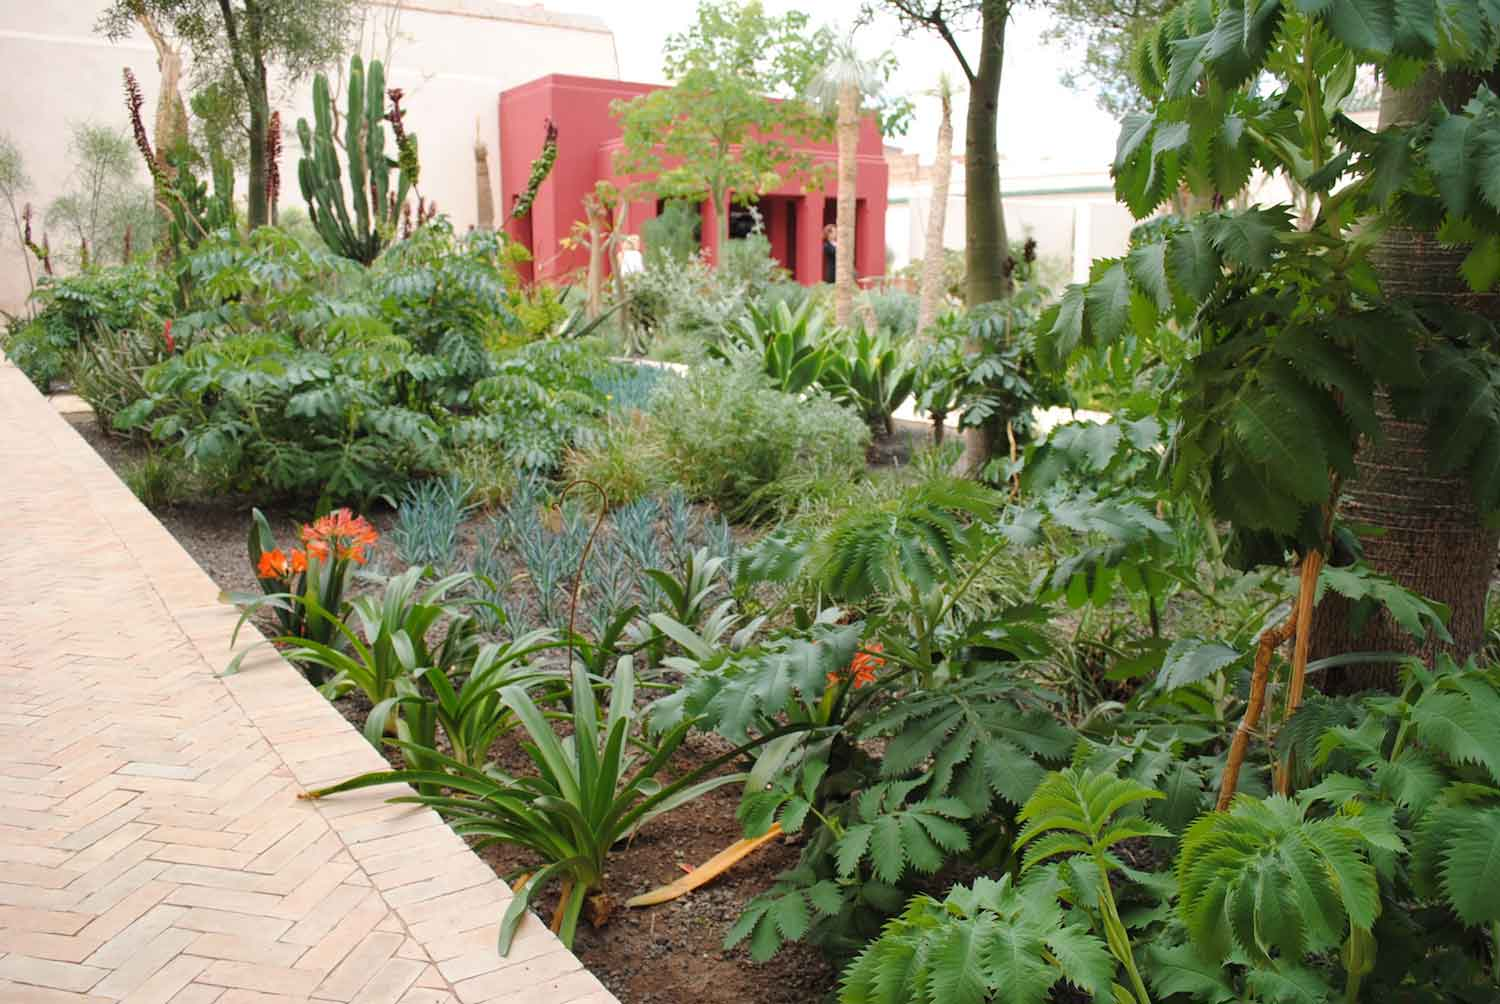 The Mood Changes As You Move Through To The Islamic Garden. This Is A  Typical Riad Garden In Form U2013 Roughly Rectangular, Enclosed, With Pavilions  At Either ...